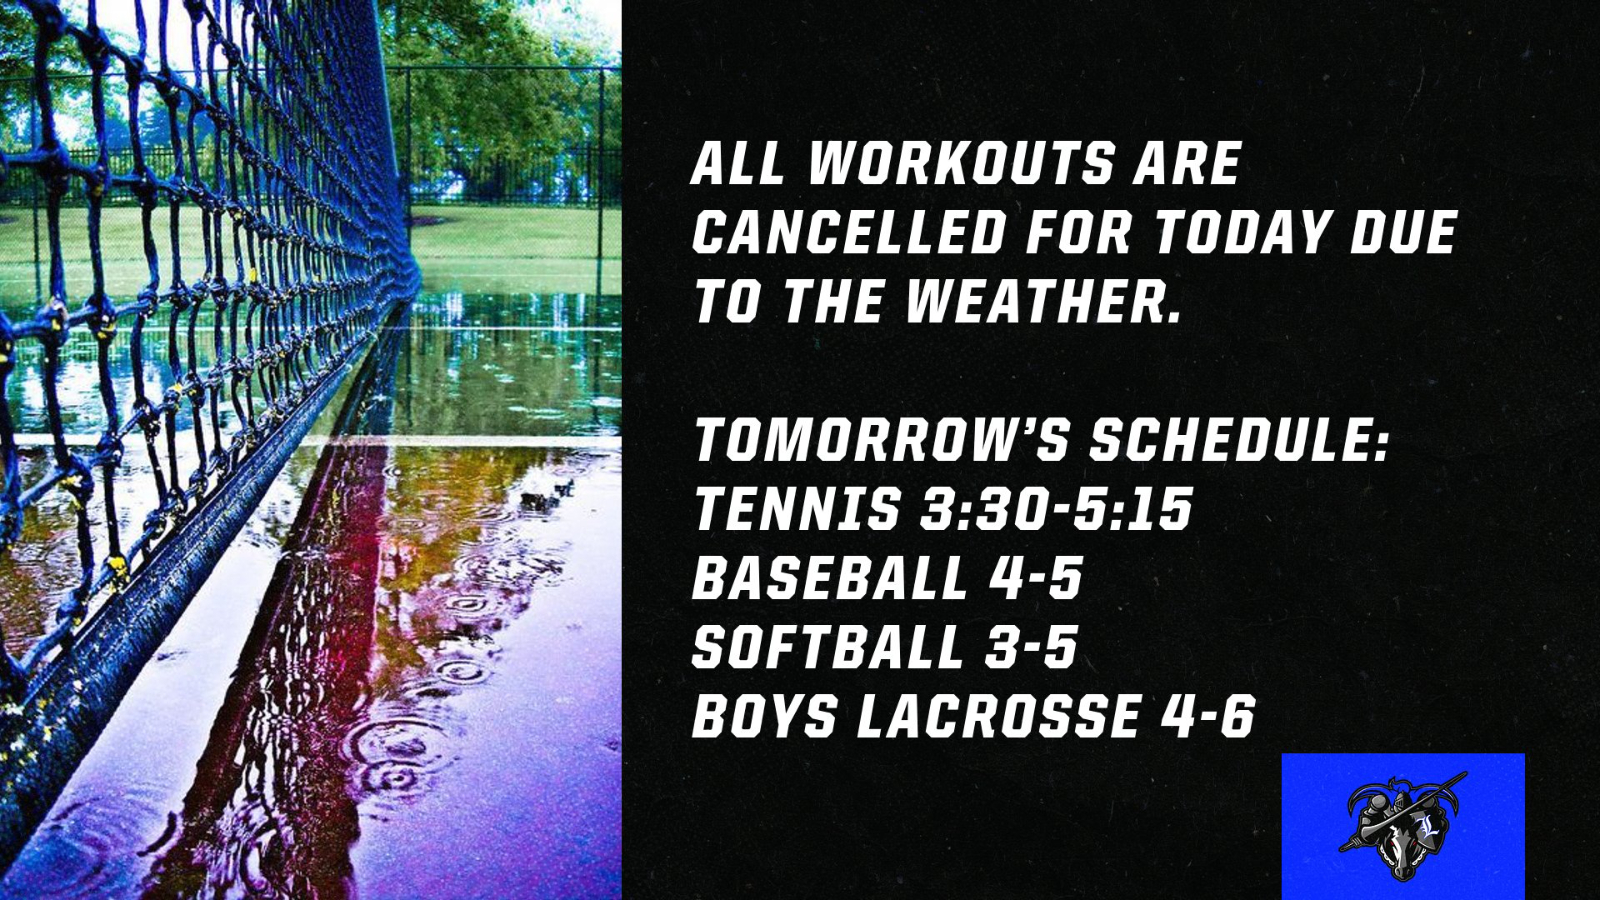 3/1 Workouts Cancelled